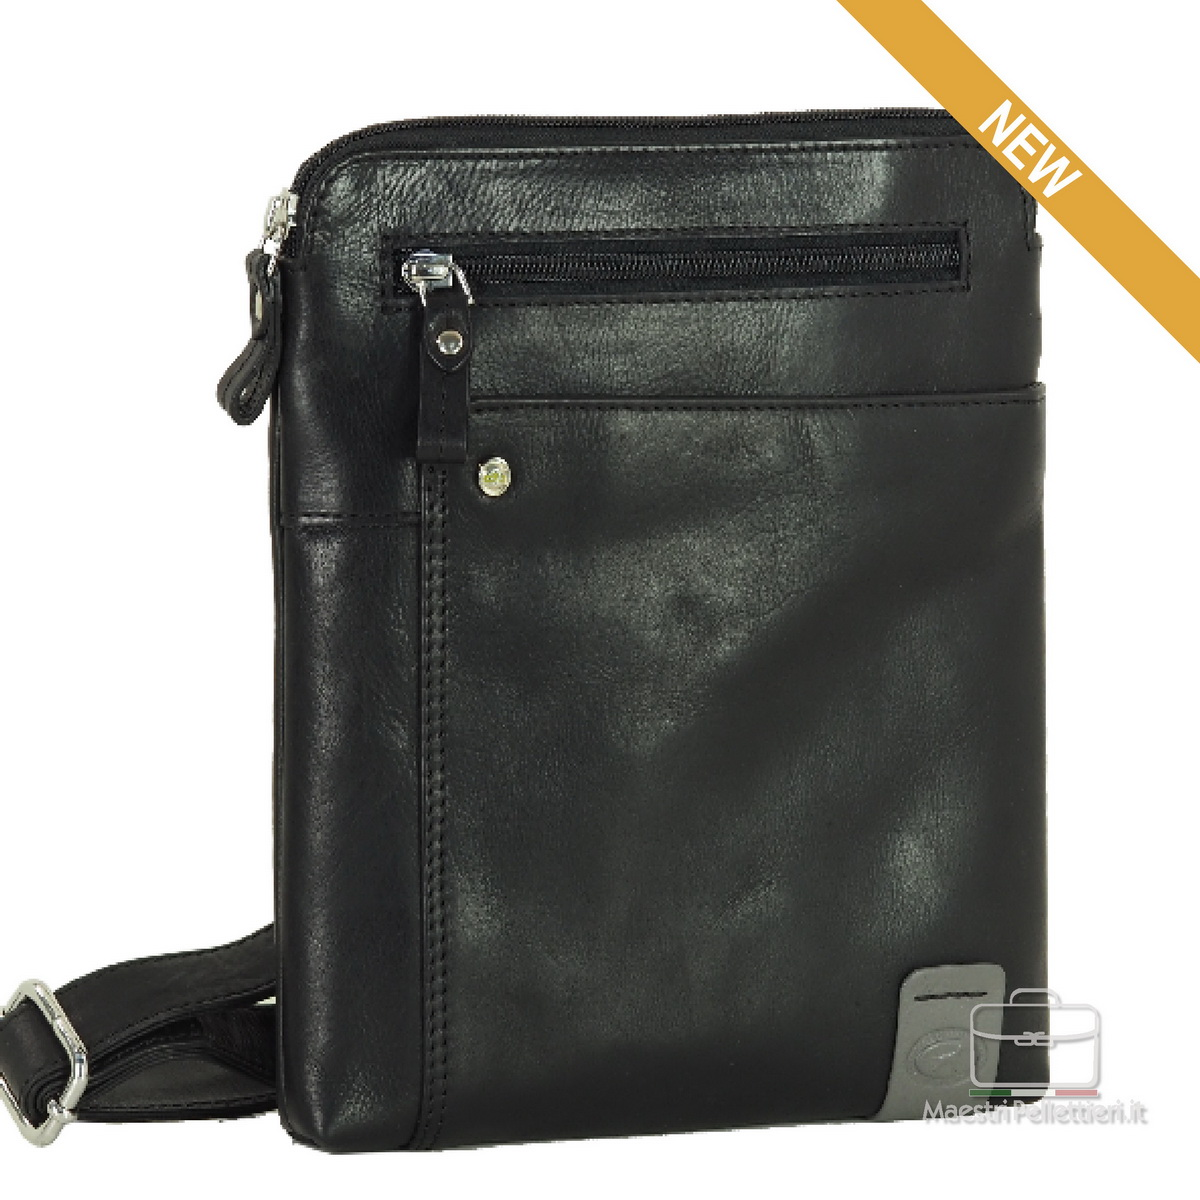 ipad shoulder bag in leather taupe gray, made in Italy | Acciaio